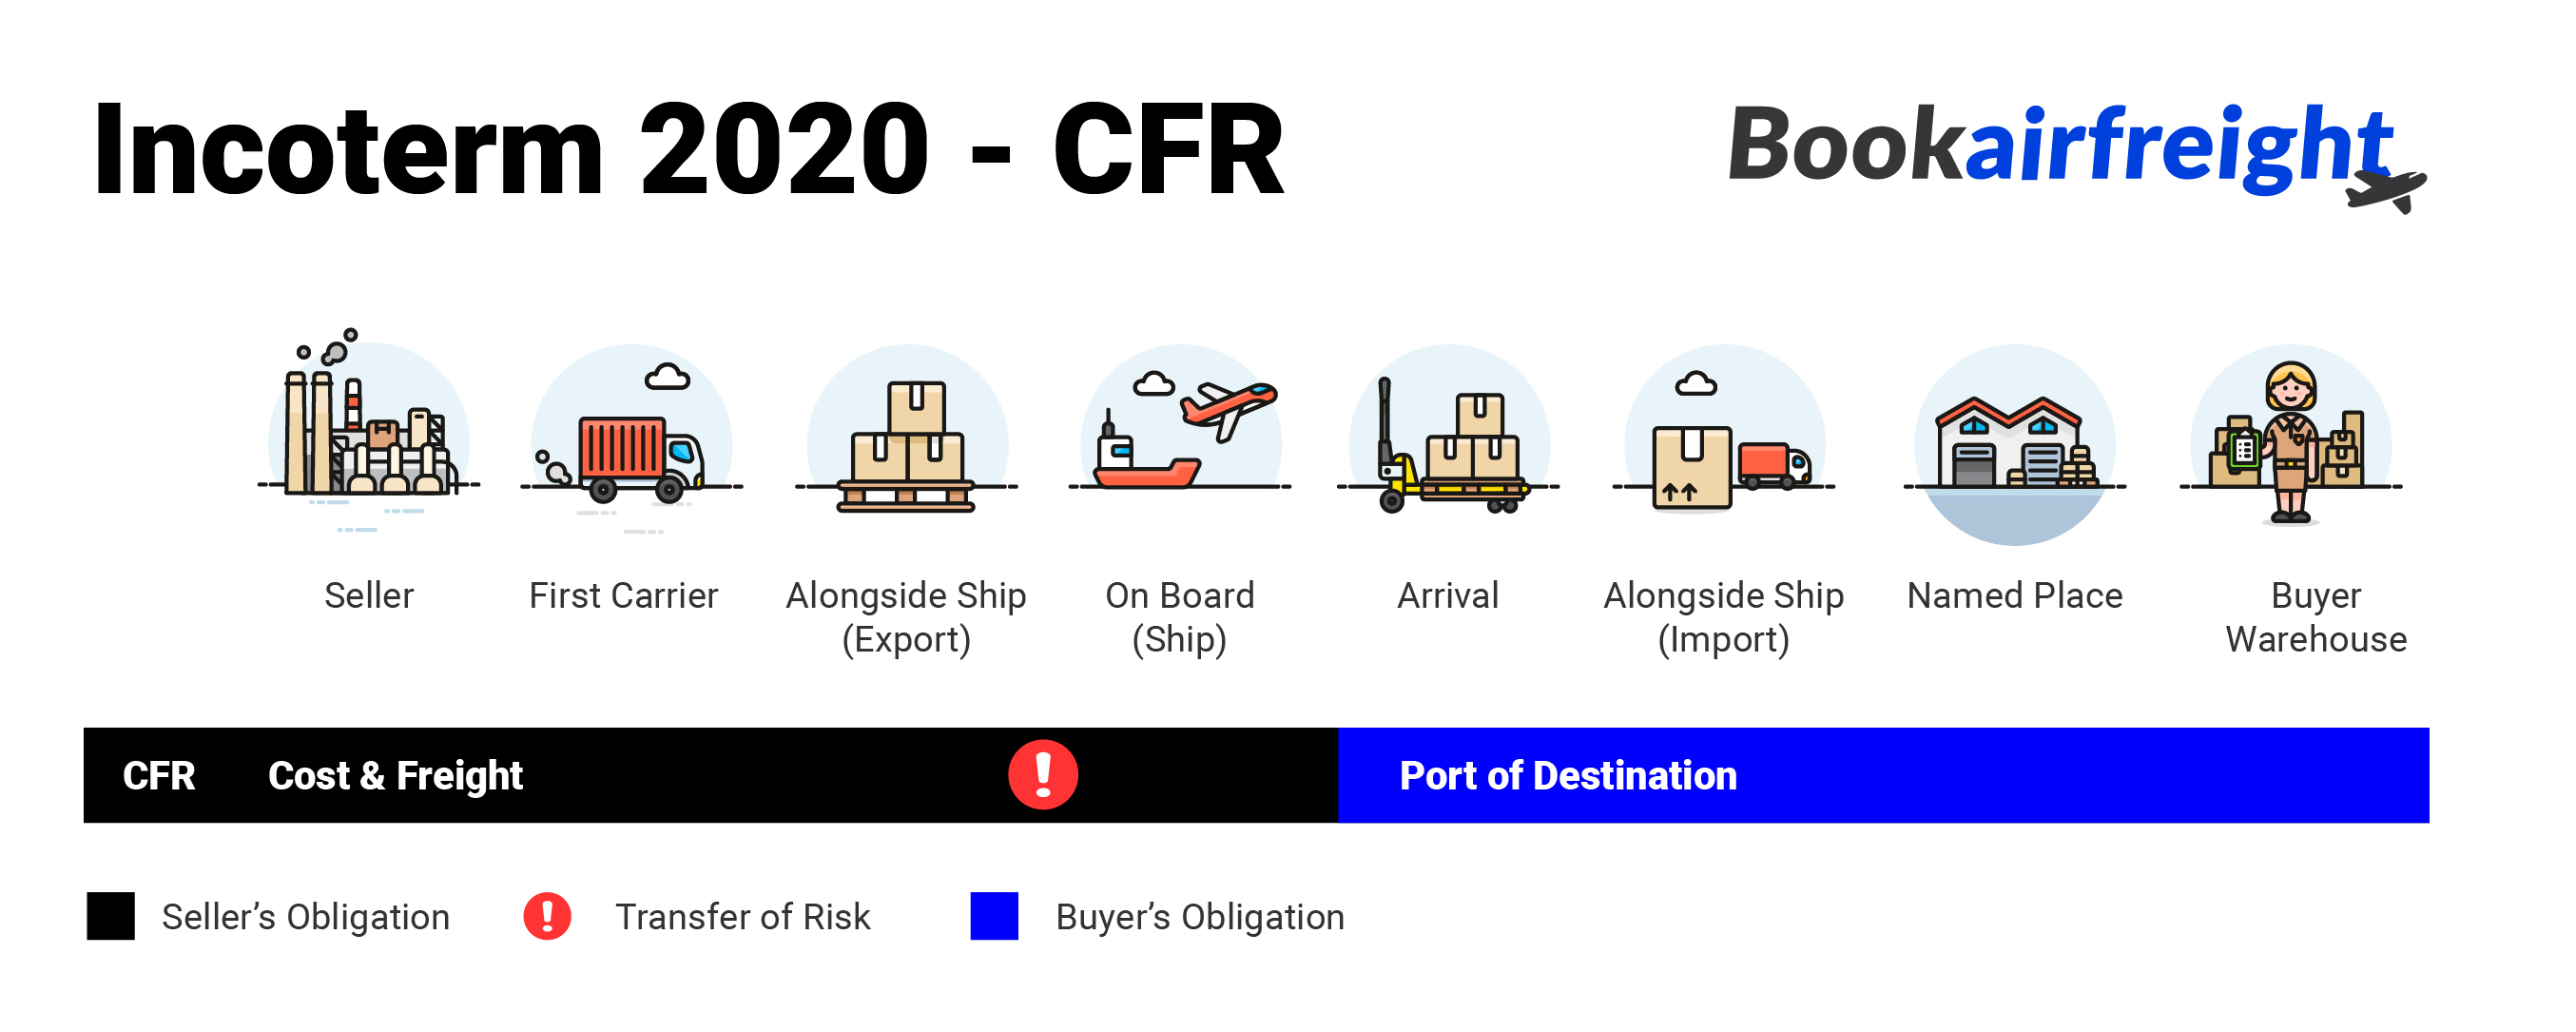 Bookairfreight - what is CFR?